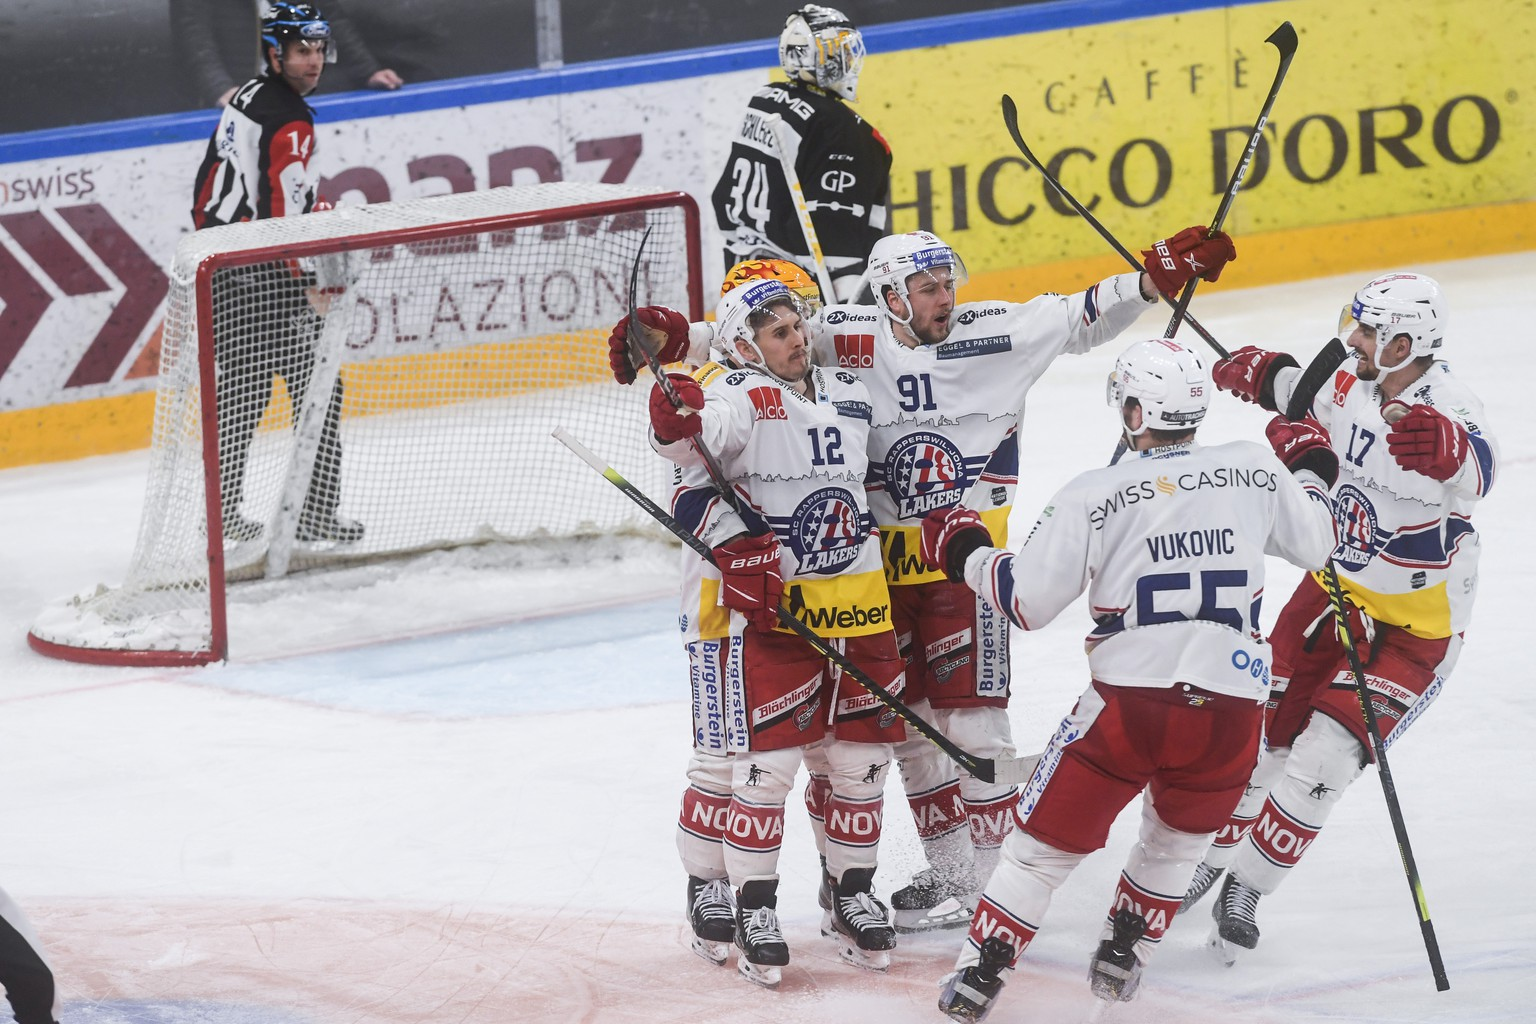 Laker's player Steve Moses, center, celebrates with his teammates the 1-2 goal against Lugano's goalkeeper  Niklas Schlegel, during the fifth leg of the playoff best of seven match of the Swiss National League between HC Lugano and SC Rapperswil-Jona Lakers, at the ice stadium Corner Arena in Lugano, on Wednesday, 21 April 2021. (KEYSTONE/Ti-Press/Alessandro Crinari)